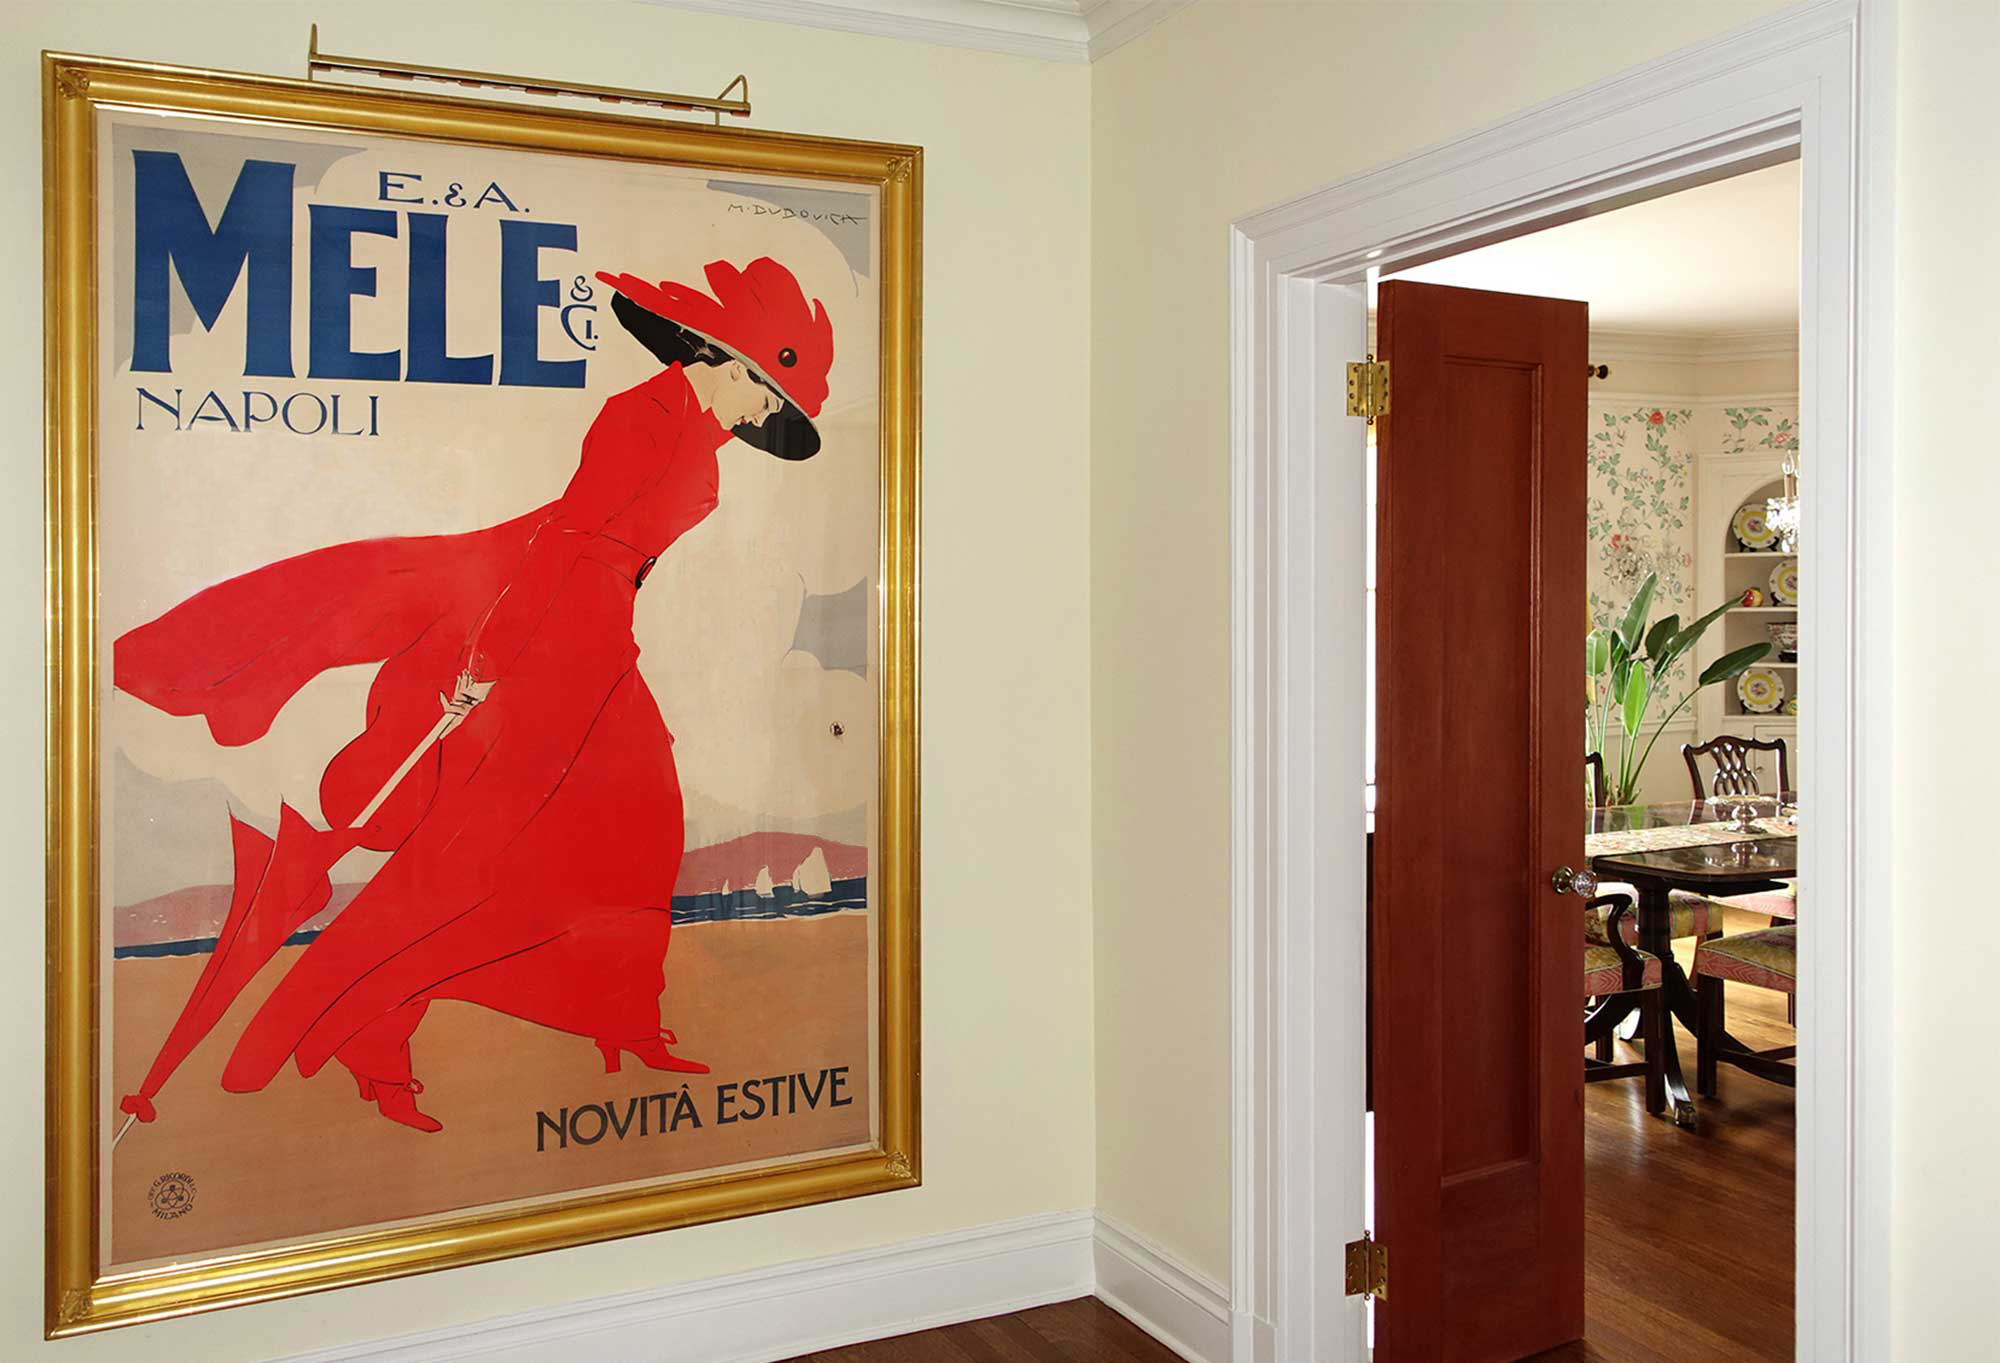 Framed fashion poster of red-clad woman at beach in hallway to dining area; red, brown, yellow